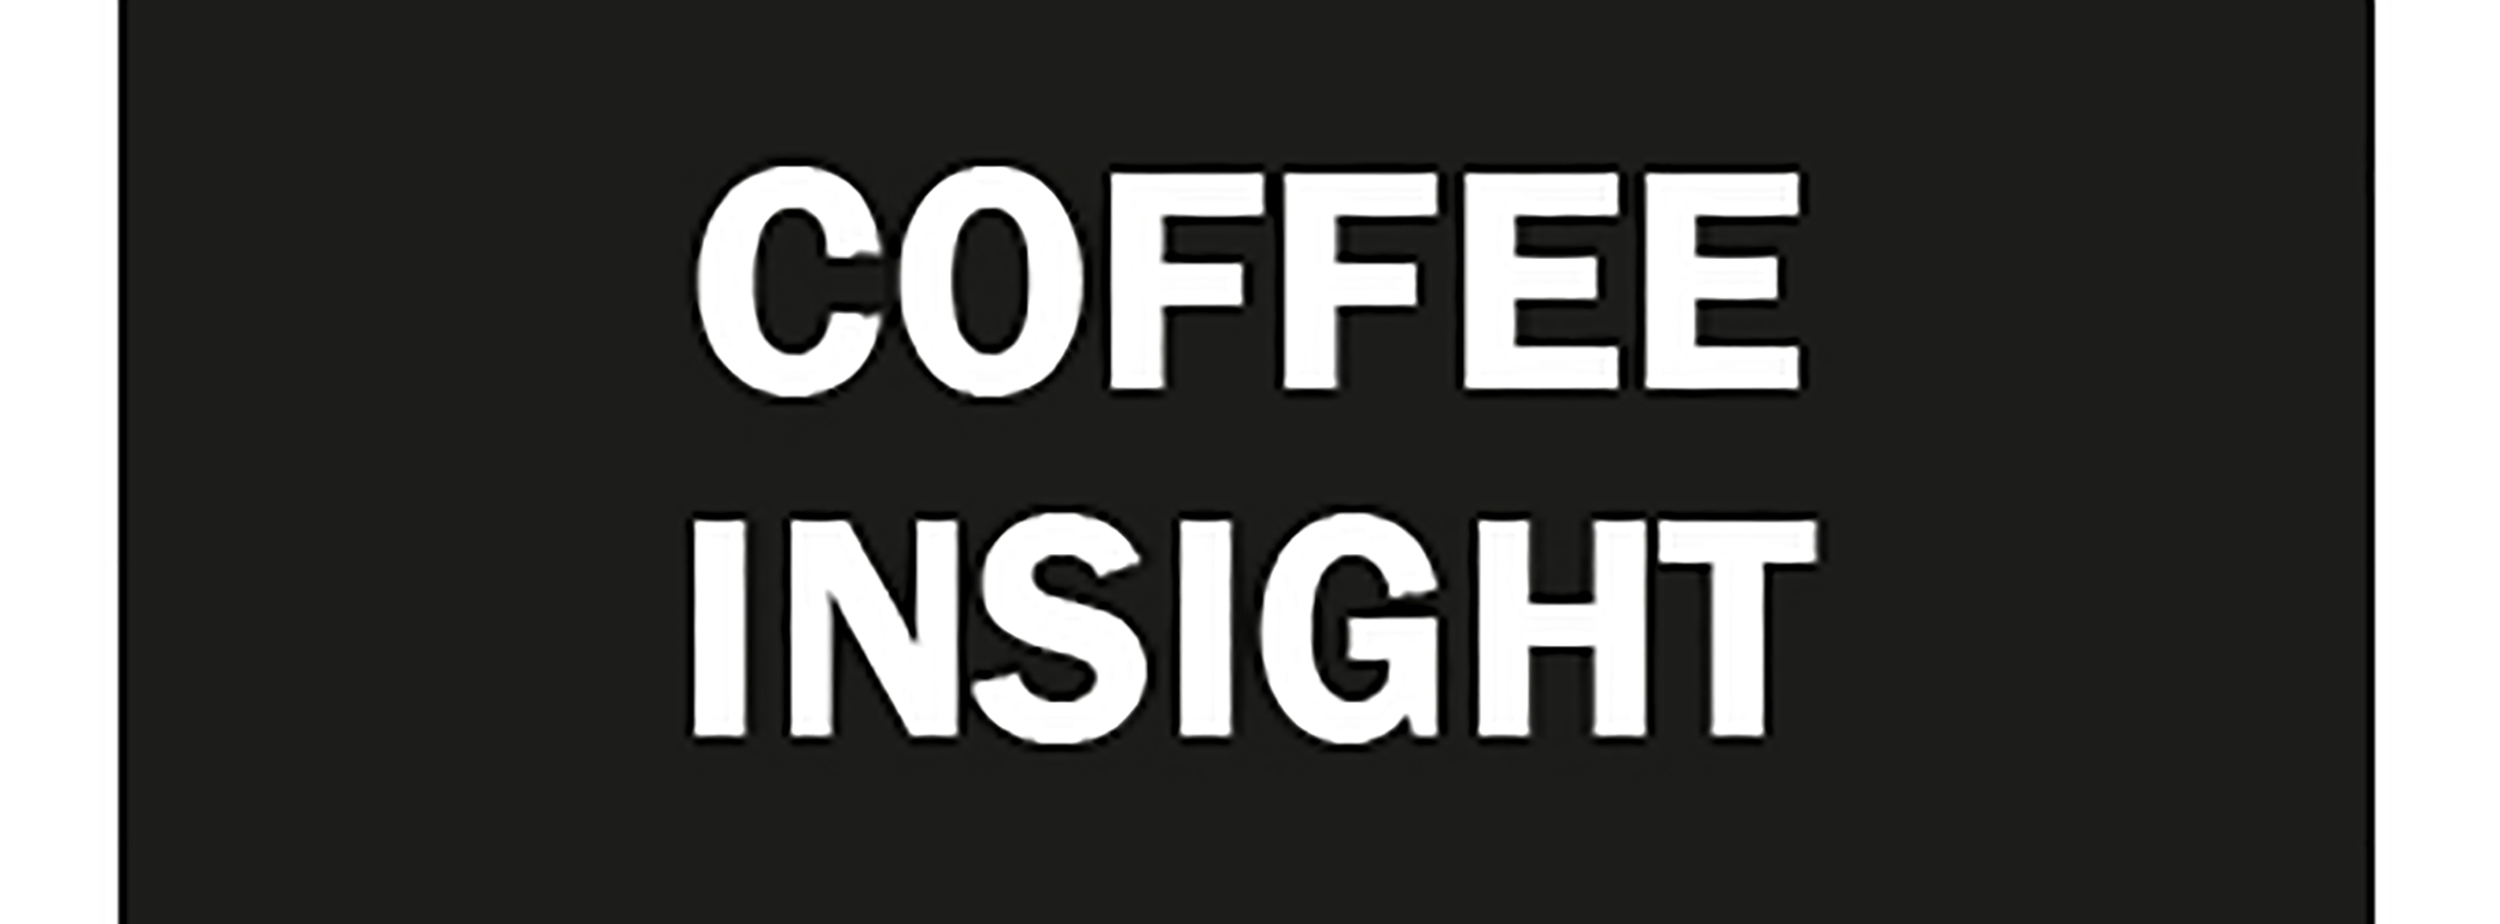 Coffee Insight BUTTON.jpg